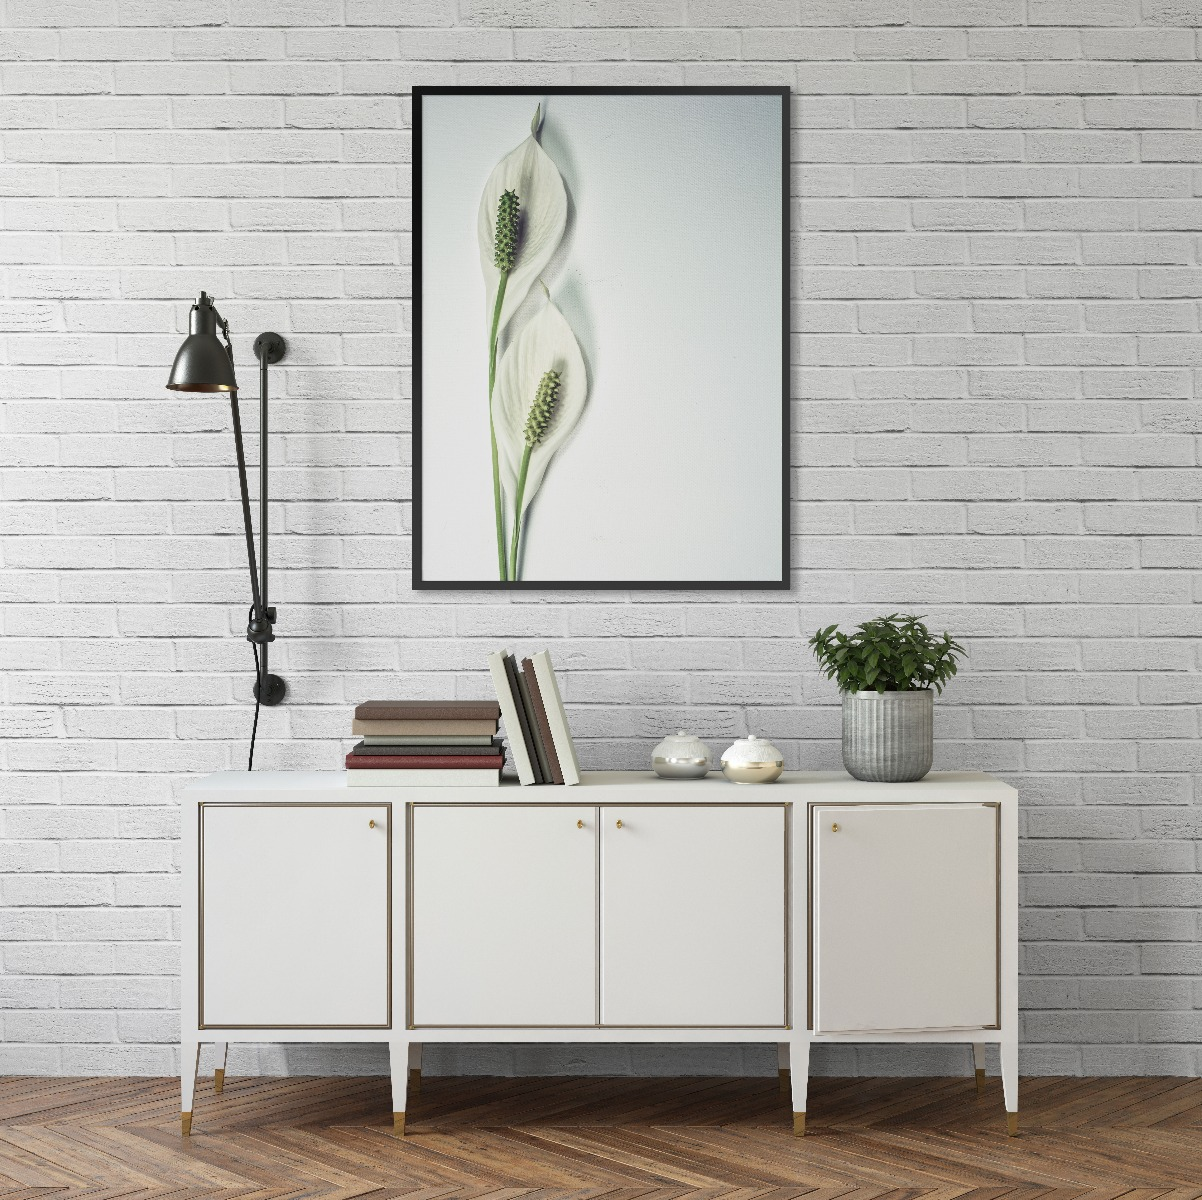 Minimalist picture frames custom picture frames our huge inventory of minimalist picture frames come in a range of colors and sizes to make the perfect statement youre looking to make with your home jeuxipadfo Choice Image